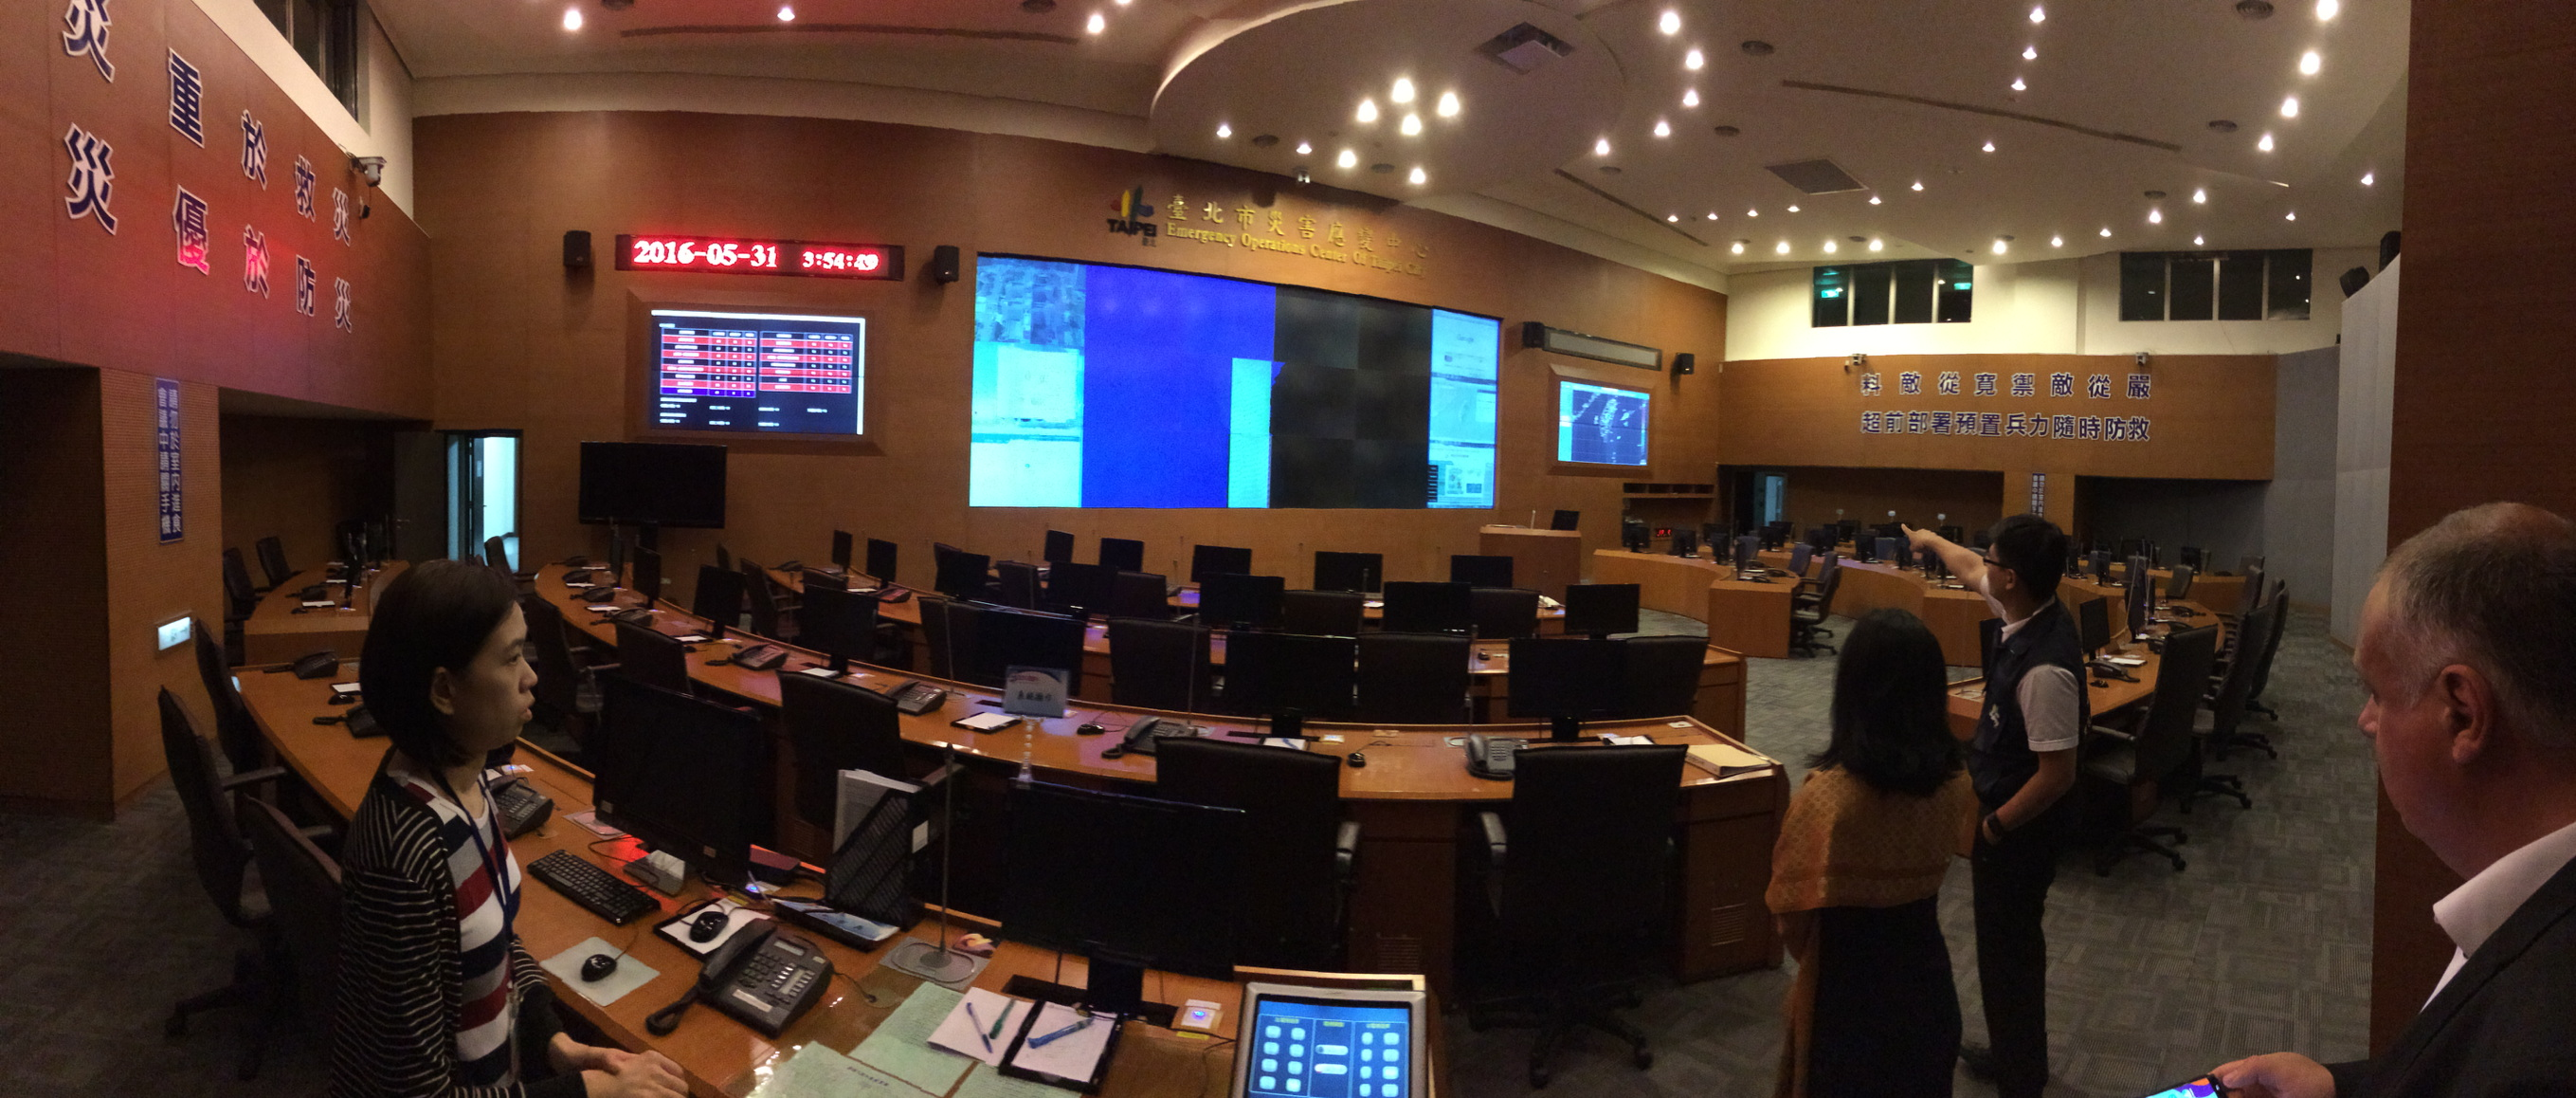 Zu Besuch im Disaster Response Center in Seoul